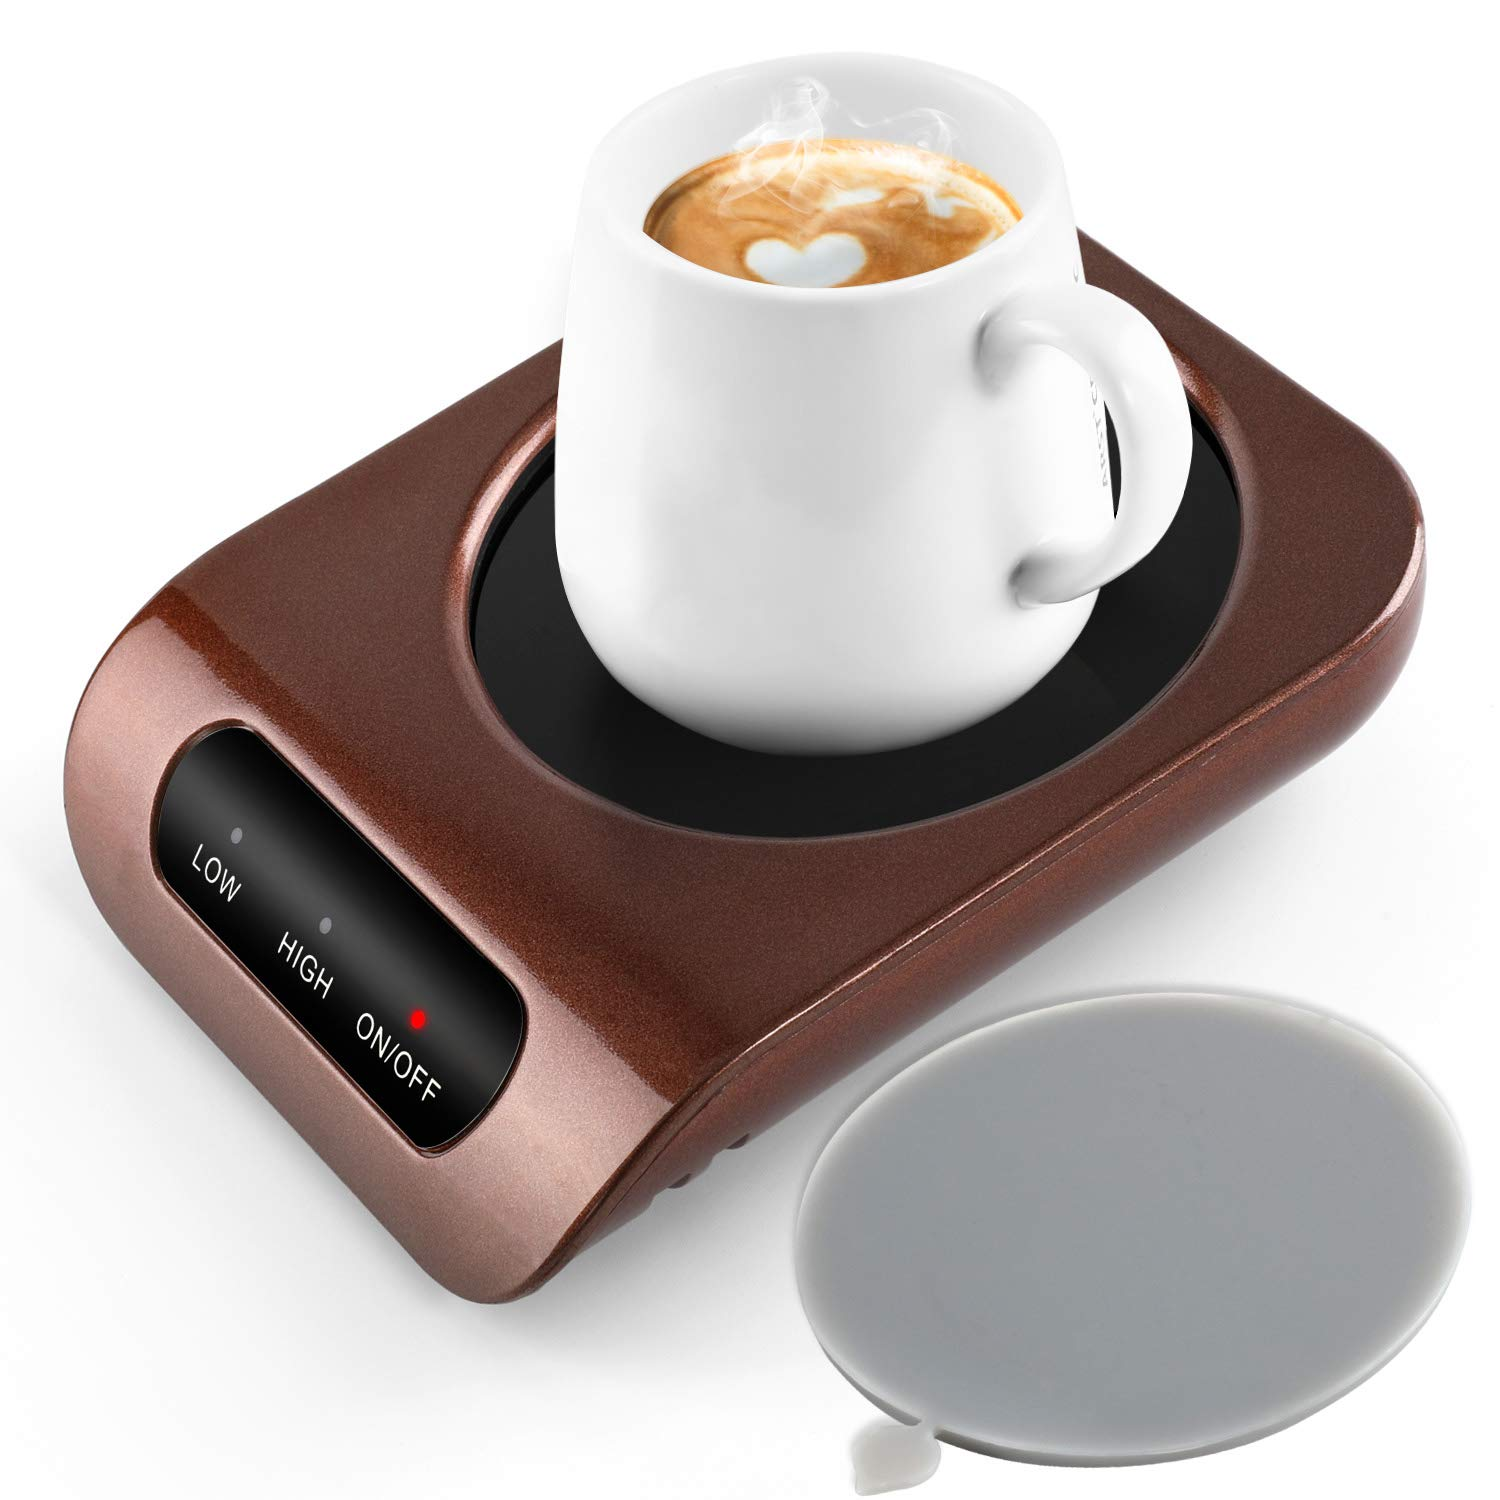 MENGMAOMAO Coffee Mug Warmer - Desktop Beverage Warmer - Electric Cup Warmer Tea Water Cocoa Milk for Office Desk and Home Use 110V 35W Best Gift for Coffee Lovers with Automatic Shut Off Function by Jingteda by MENGMAOMAO